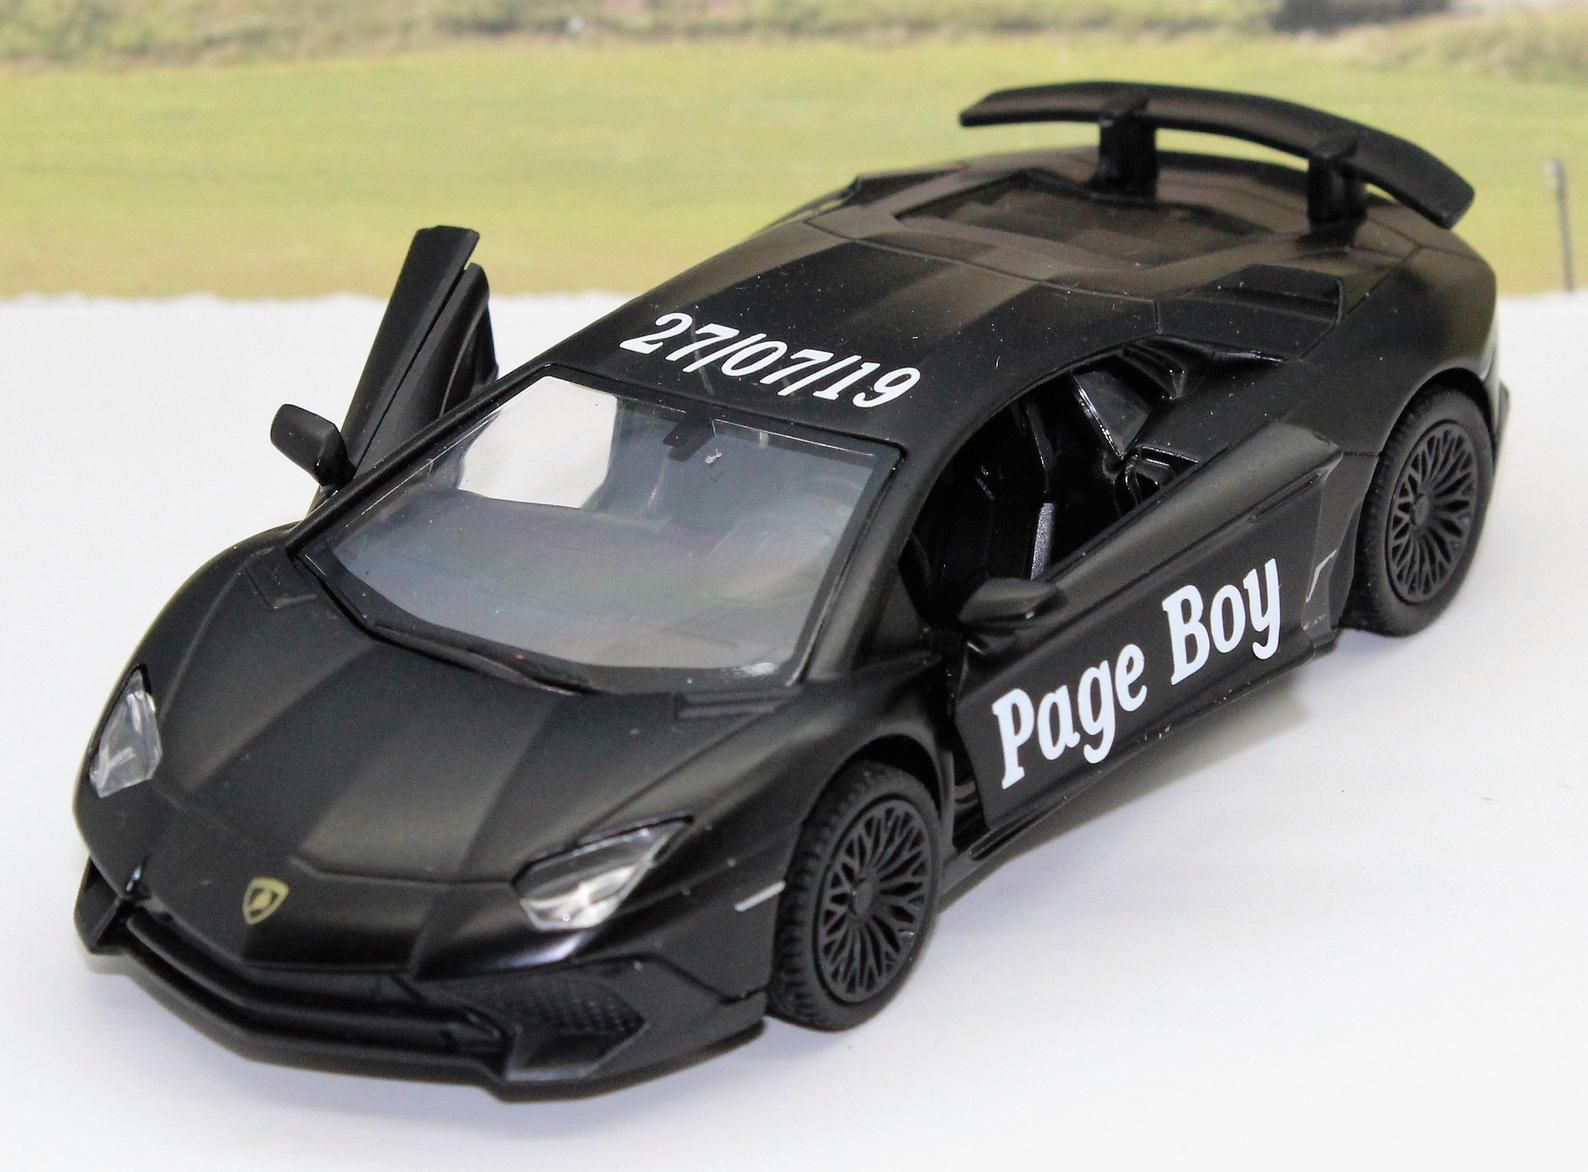 Wedding Day Gift Personalised Page Boy Usher Name Lamborghini Boys Toy Present